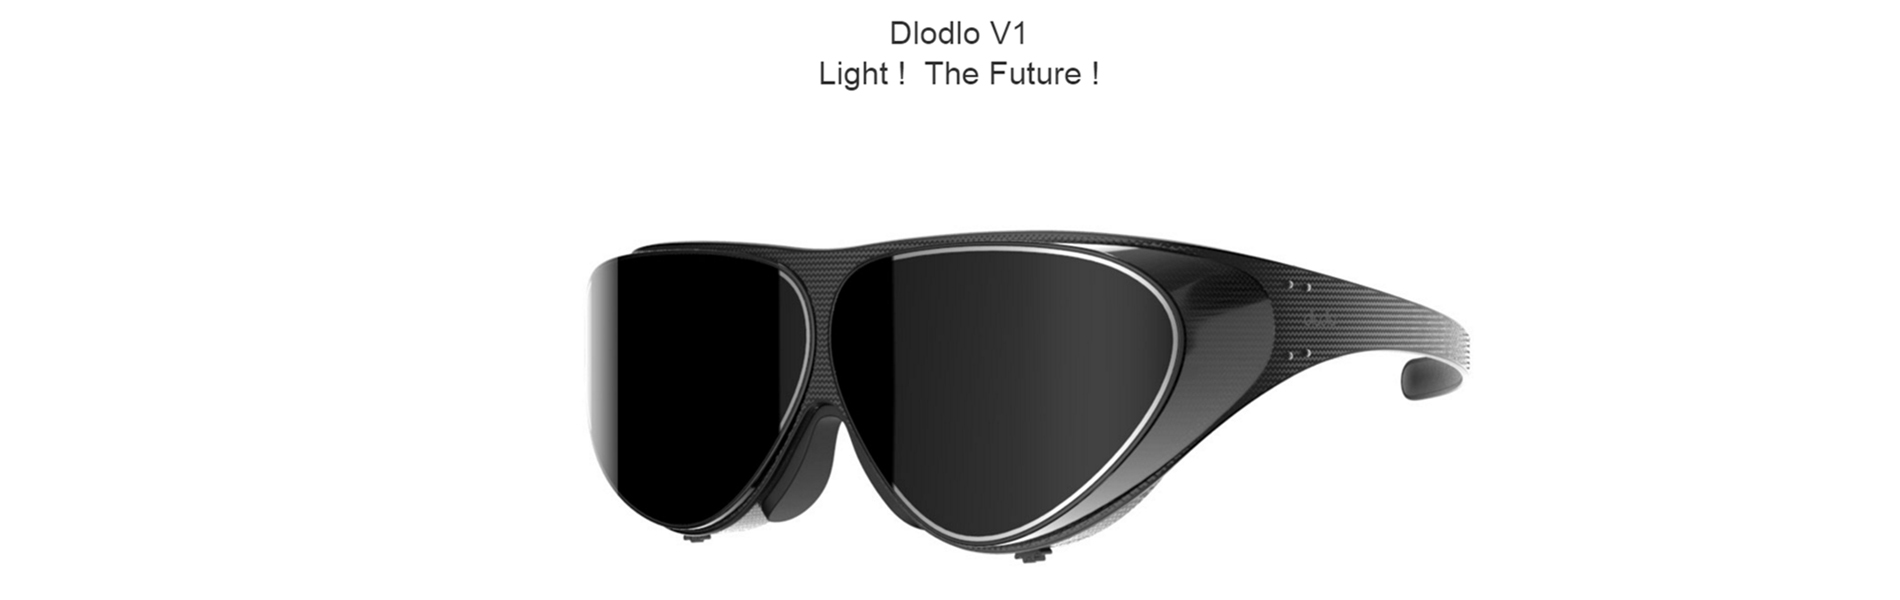 Dlodlo Launches the World s First Consumer Grade VR Glass Product in New  York 119a2674af2b1